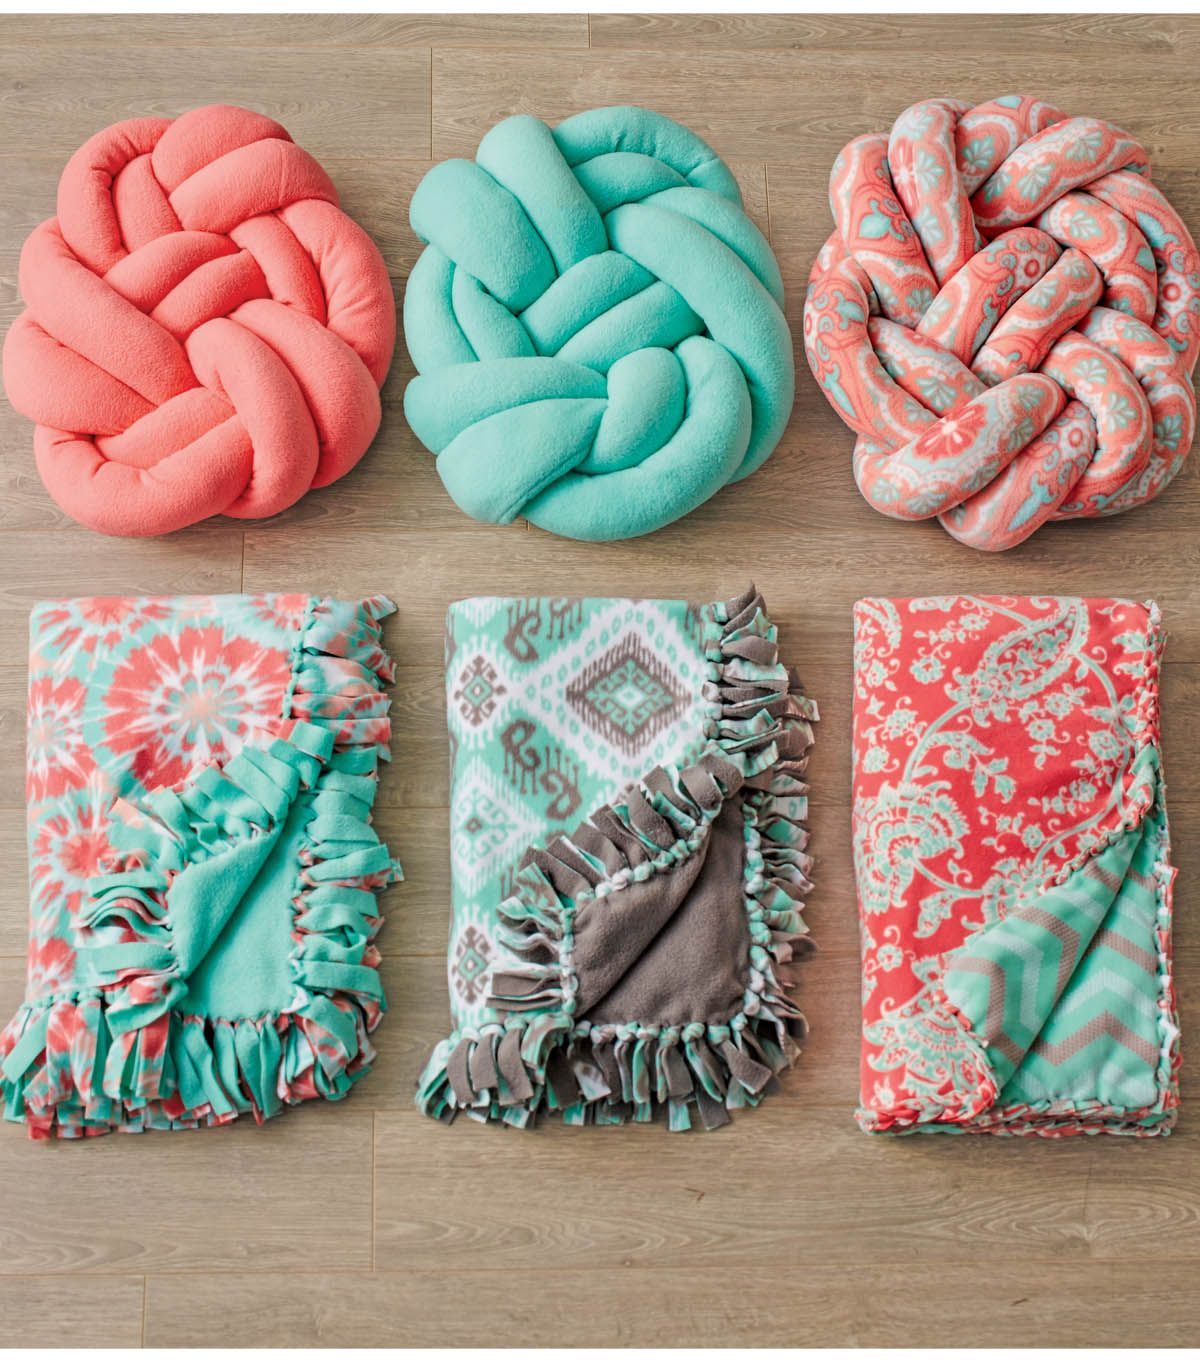 The Hottest Modern Trend DIY Knot Pillows No sew